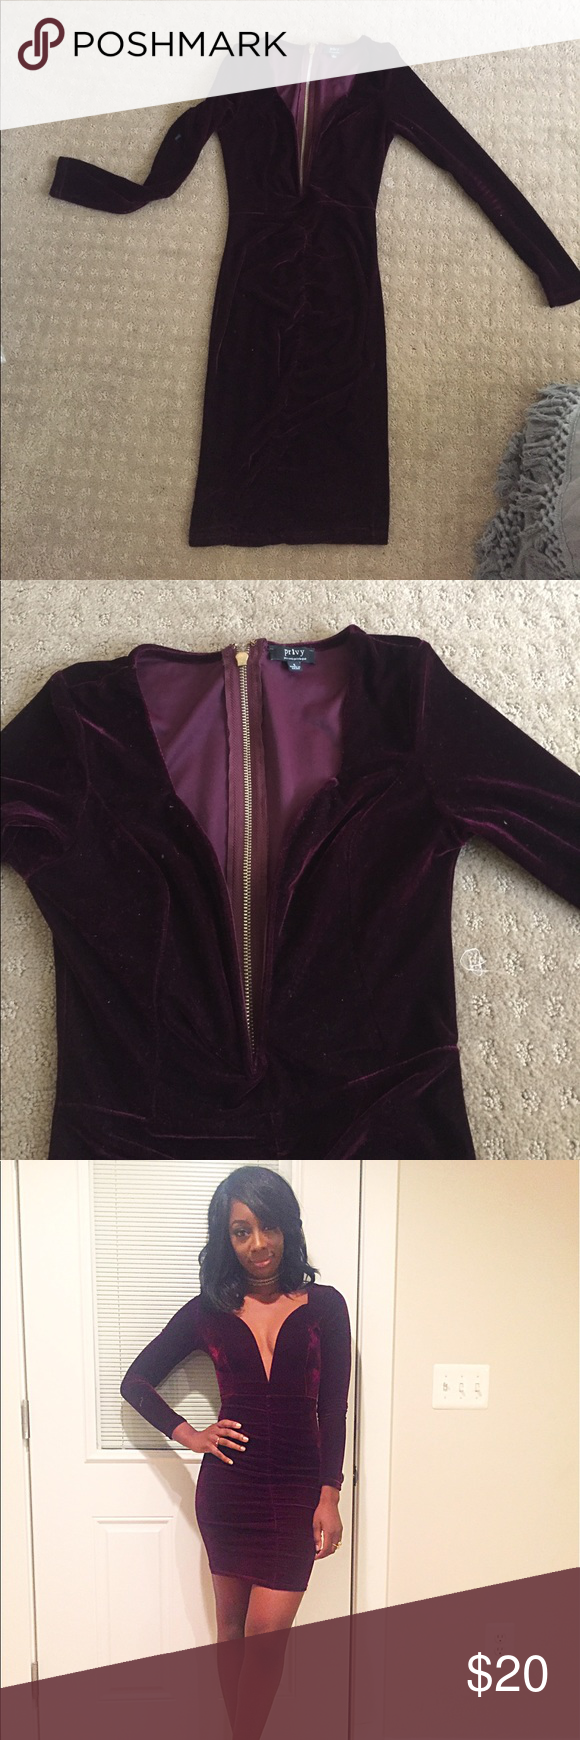 Velvet deep V rusched front dress This deep burgundy velvet dress is super sexy and great for a night out. It has a deep v with wire for structure and a rusched down the middle to hug your curves. Dresses Long Sleeve